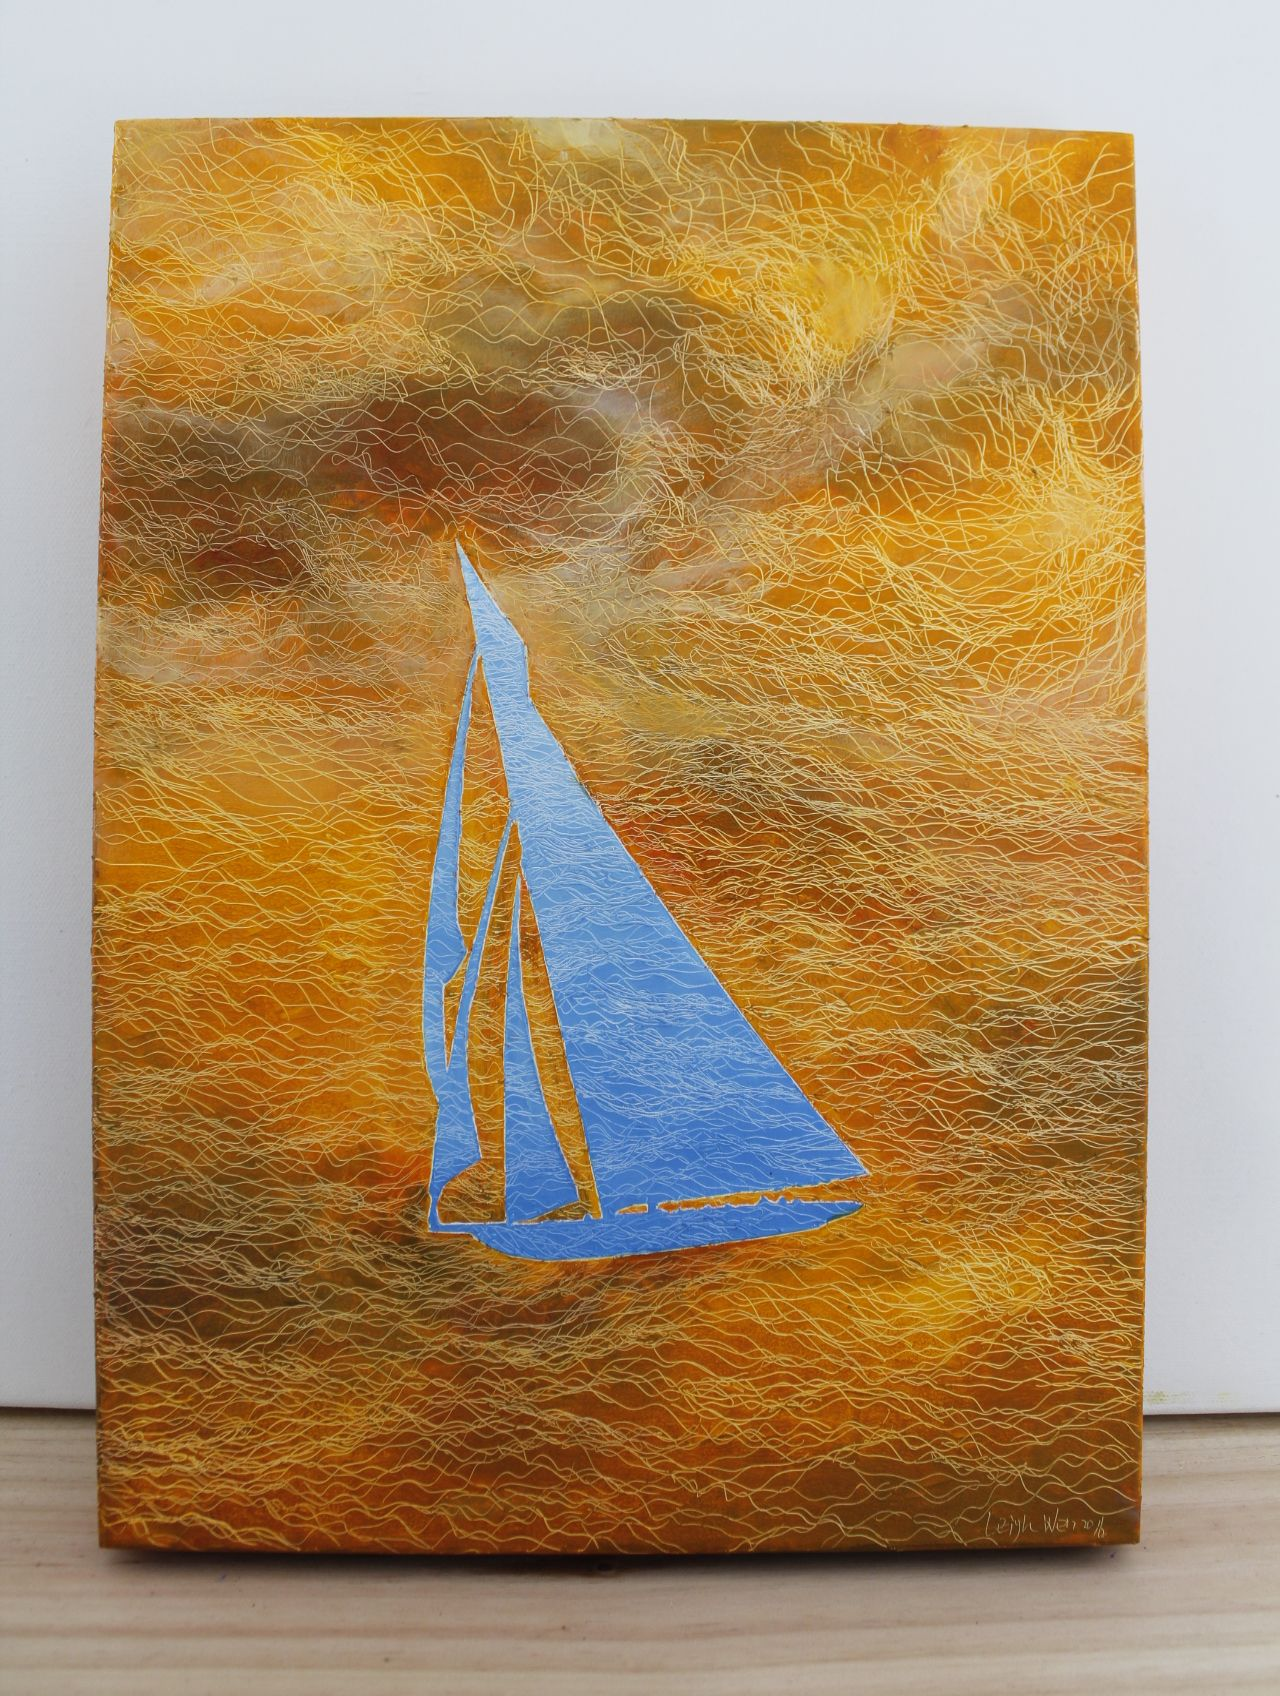 帆行 4, Sail 4, 45 x 33 cm (8P), oil on linen, 2016